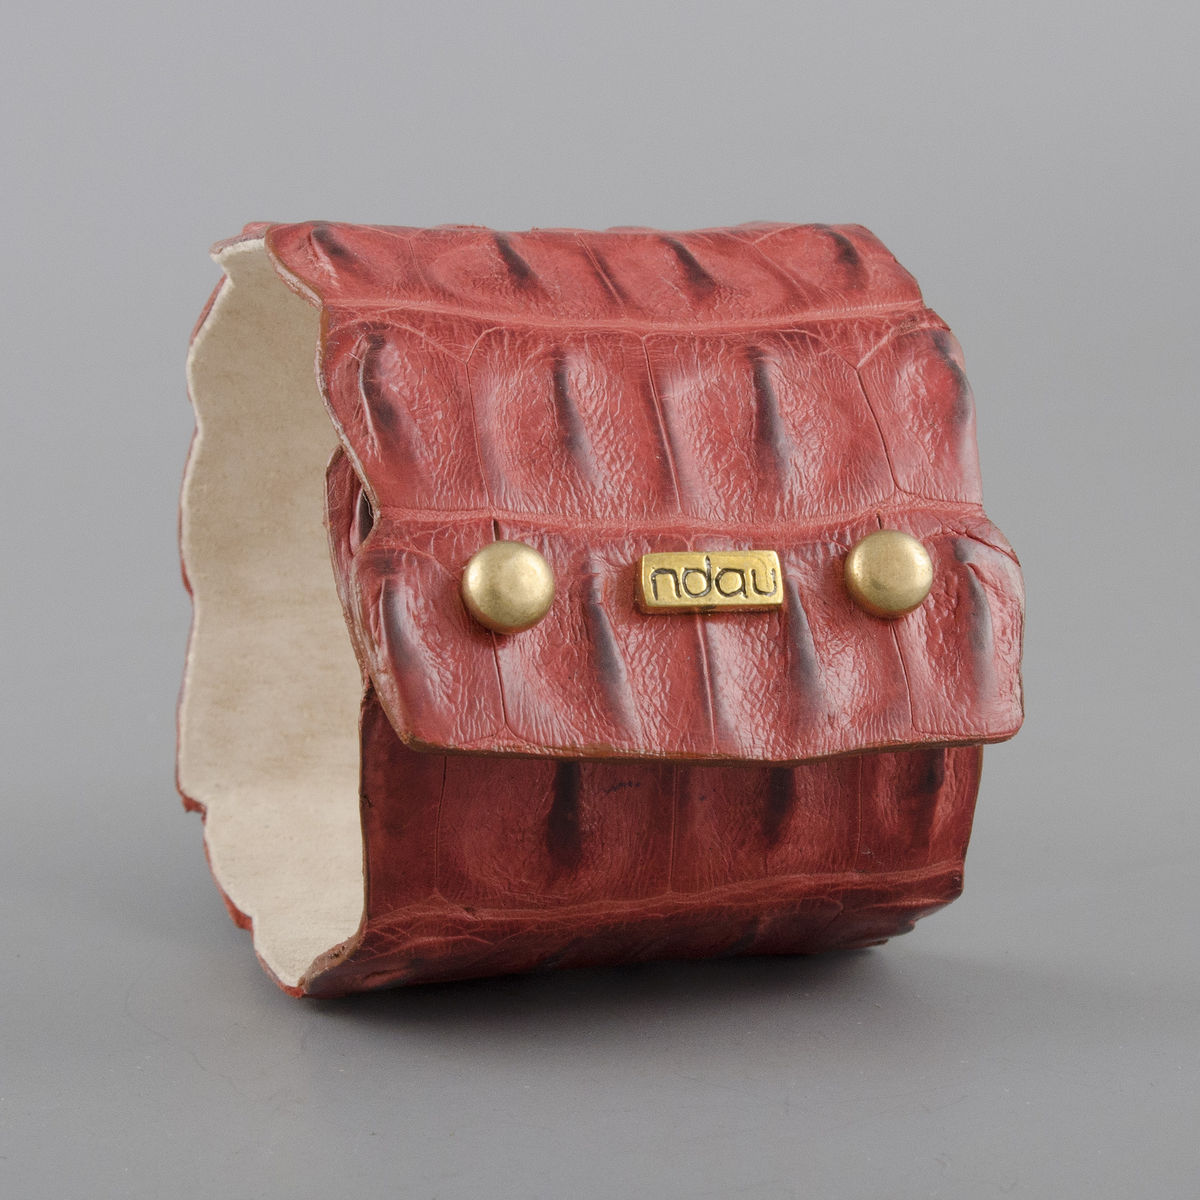 Crocodile Backskin Leather Rock Cuff with Double Holster in Rust - product image